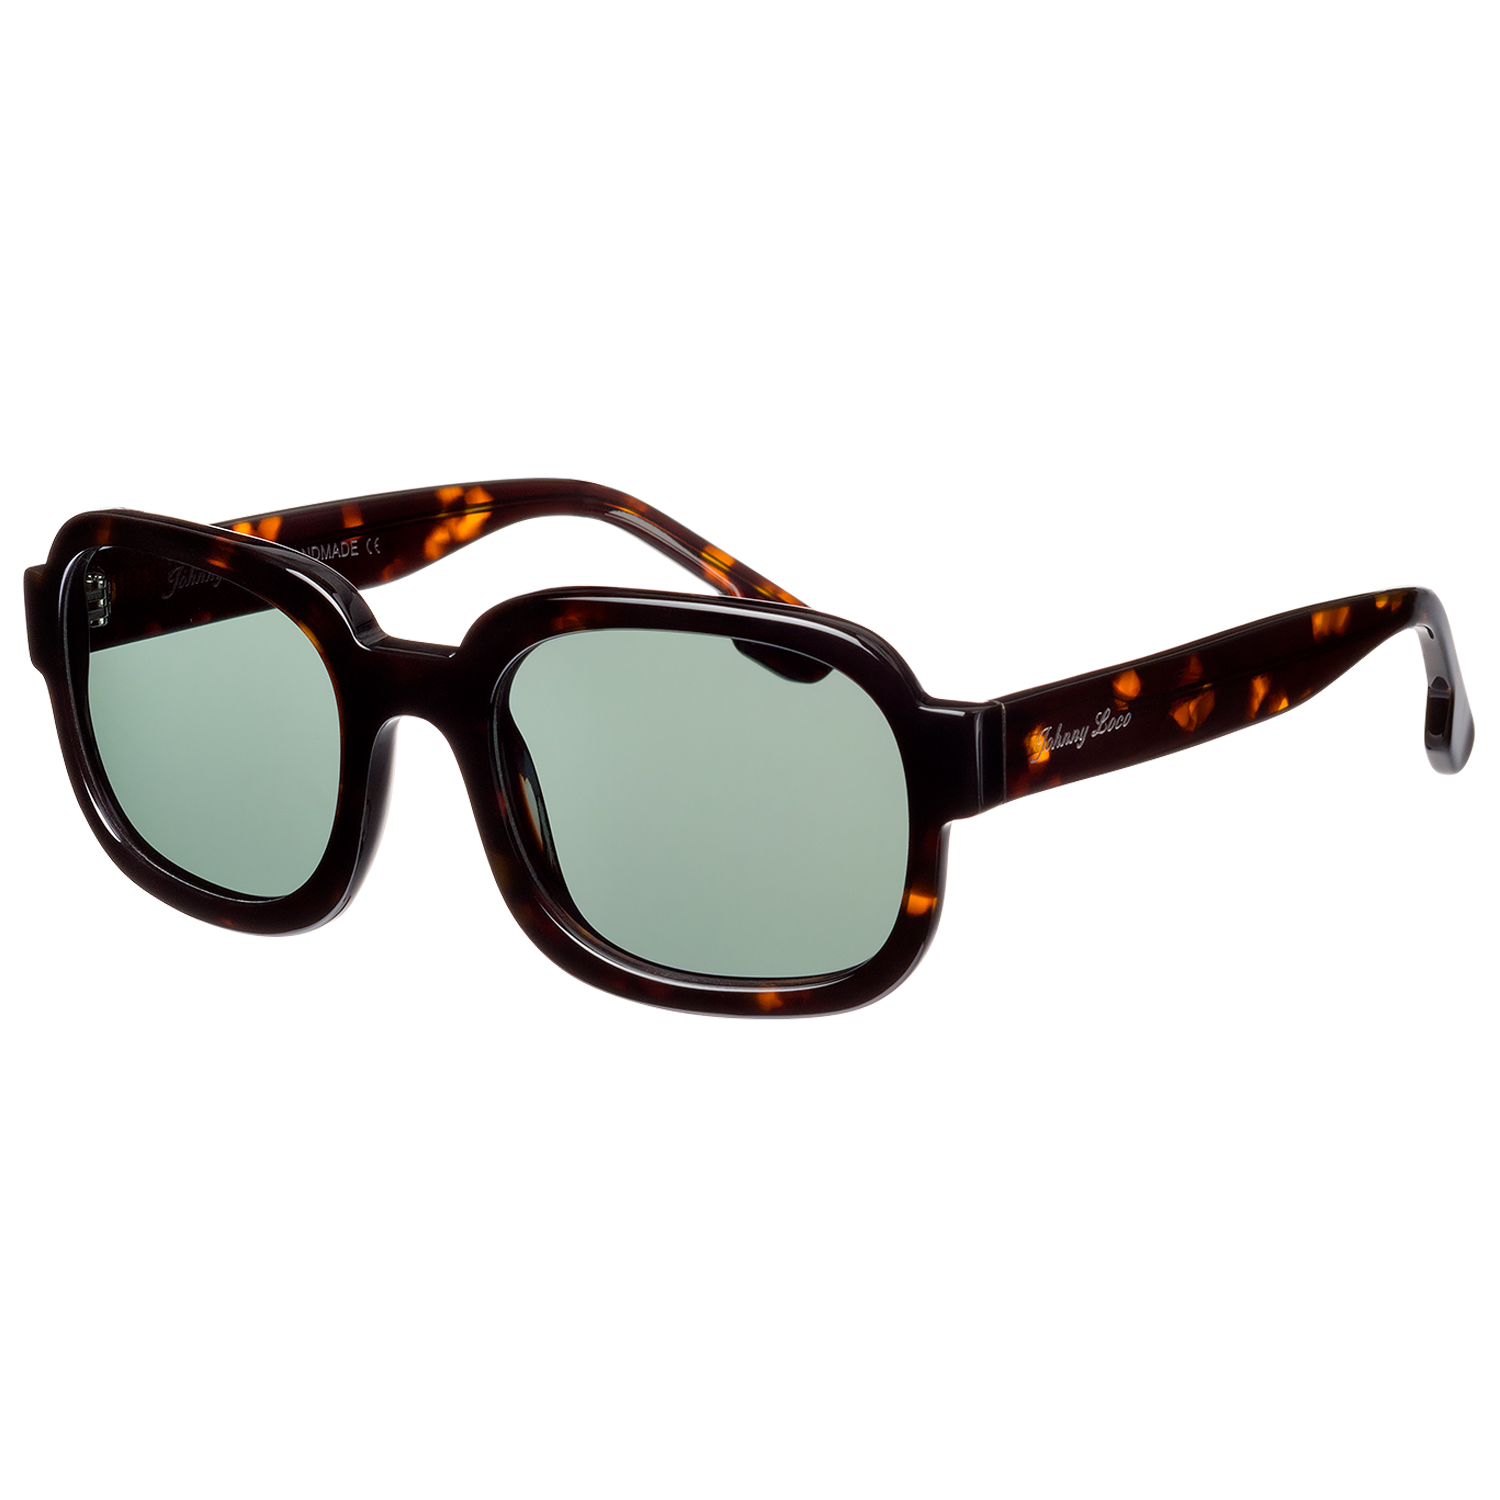 Johnny Loco Sunglasses JLE1506 B5 52 Tyler Brown